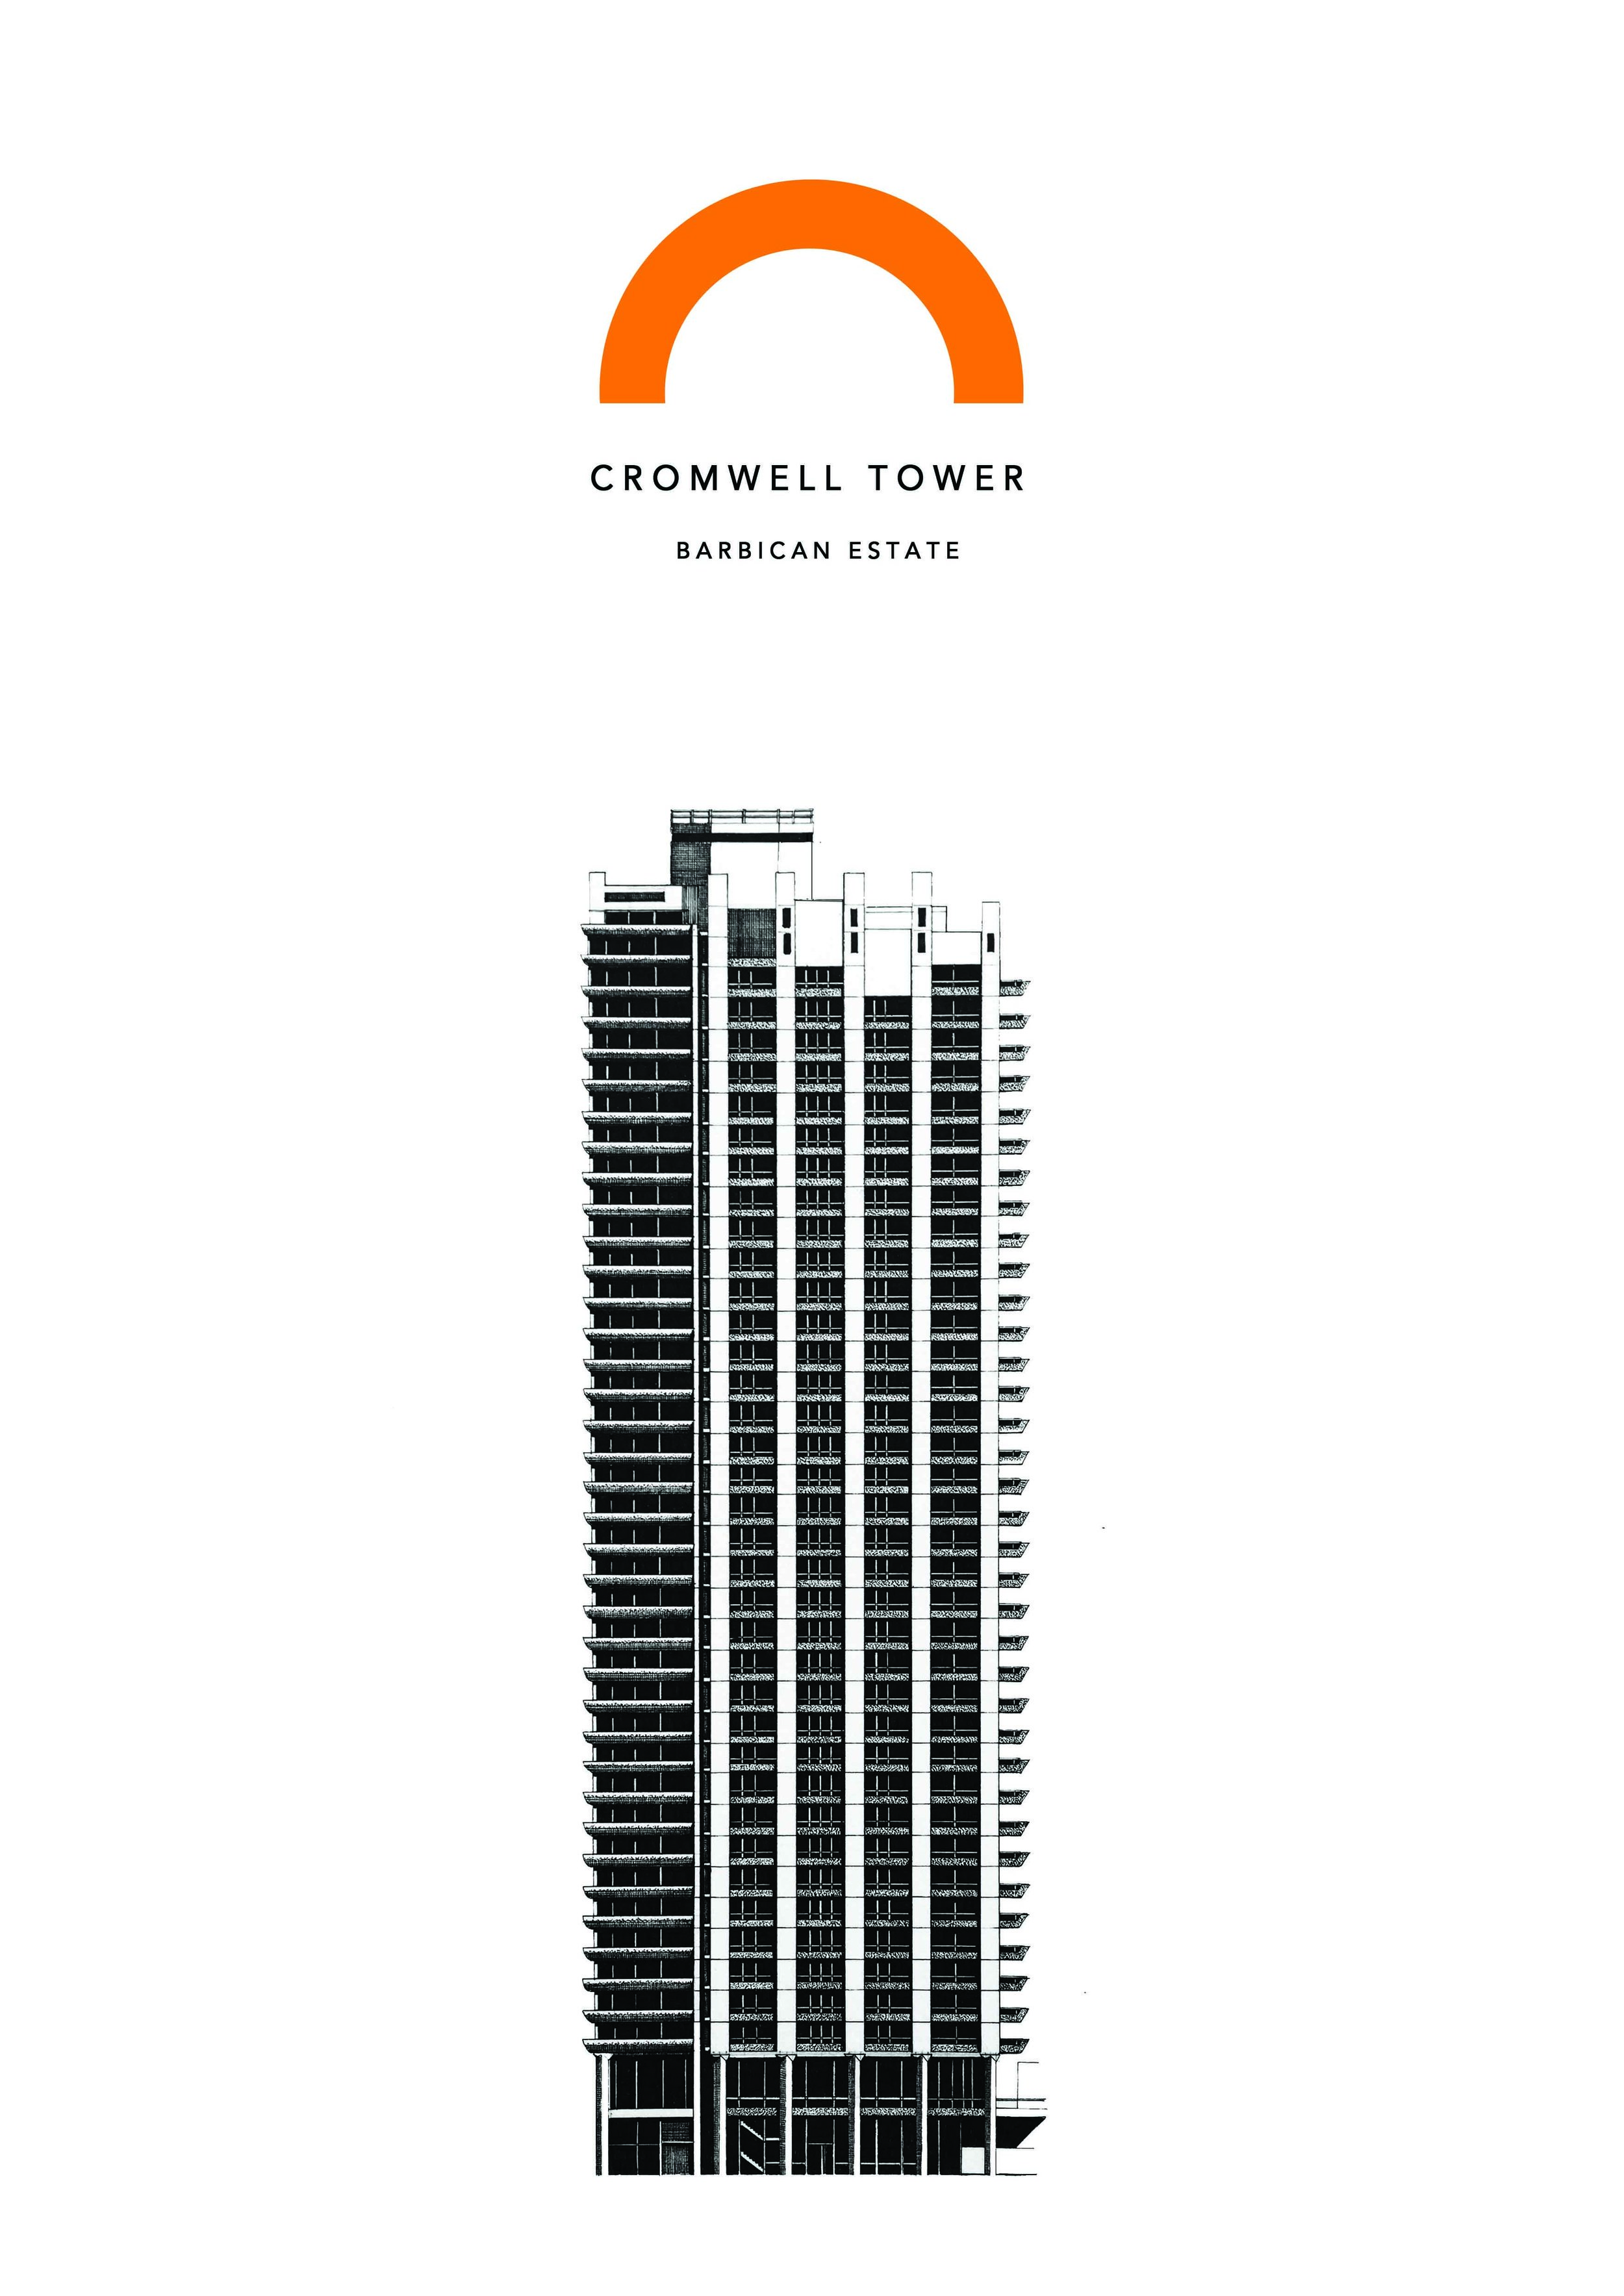 Cromwell Tower. Barbican Estate. London